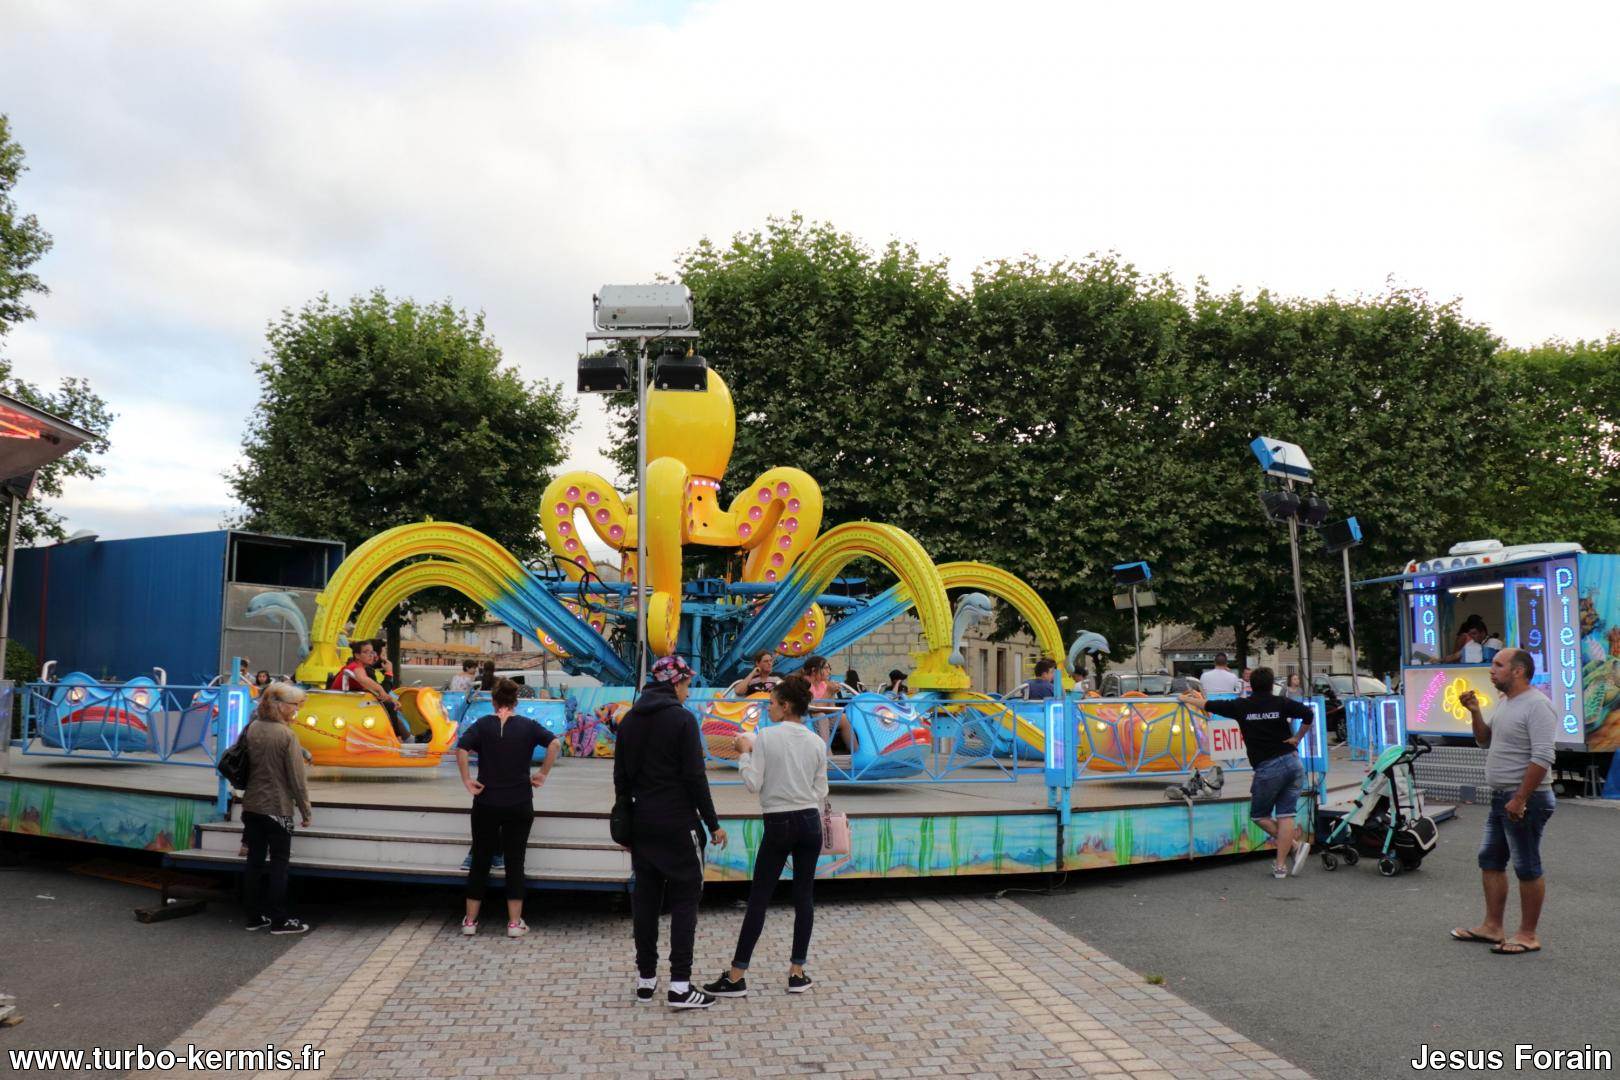 https://www.turbo-kermis.fr/gallery/img_turbo-kermis_74973.jpg